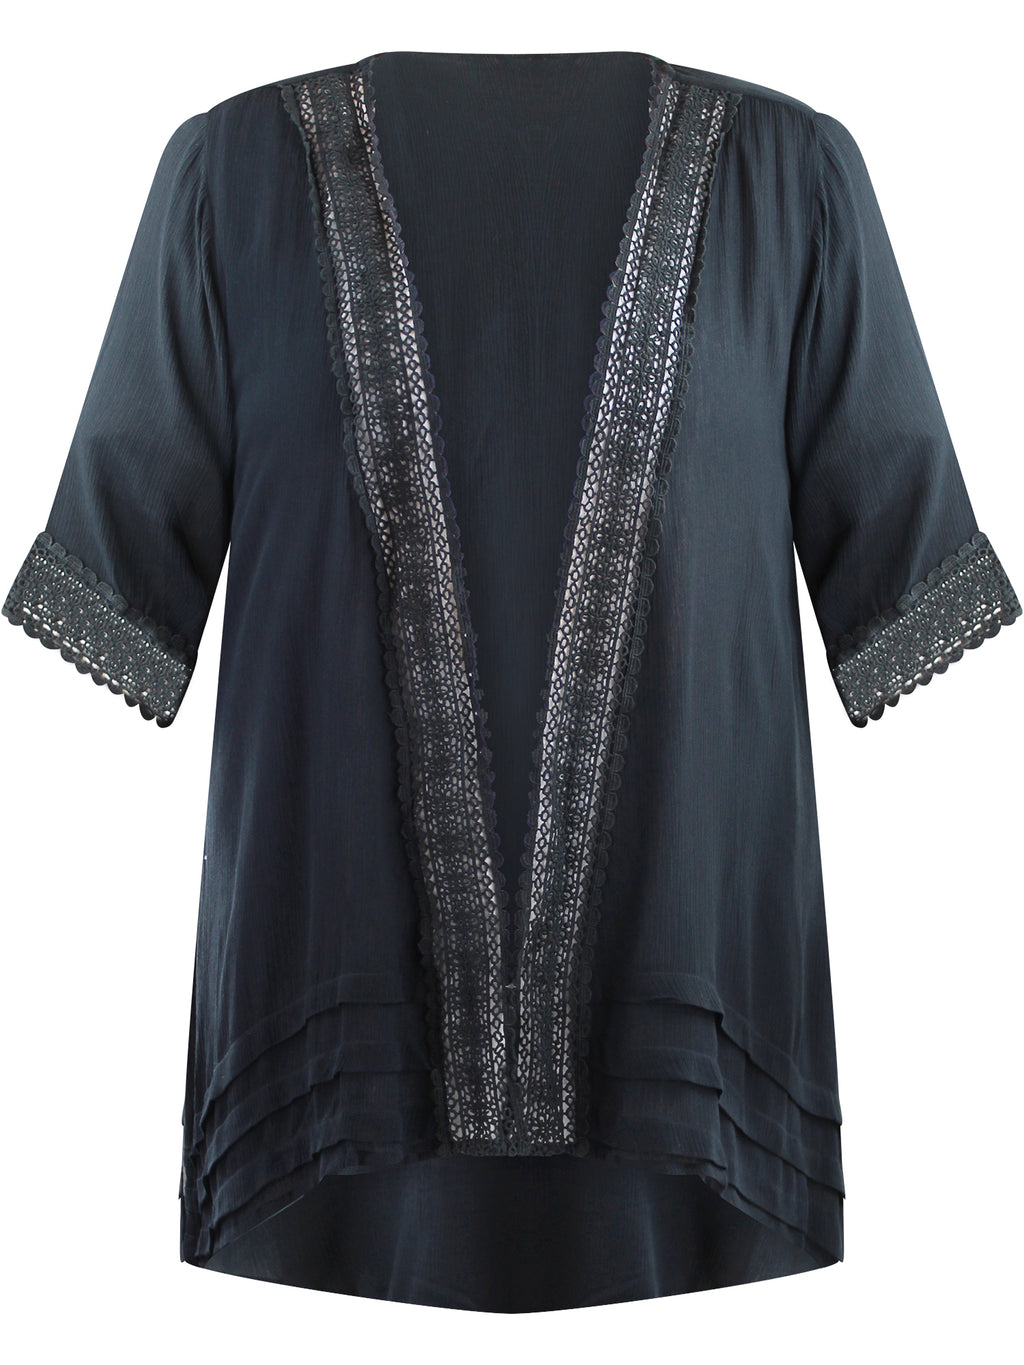 Plus Size Kimono Cardigan With Lace Trim